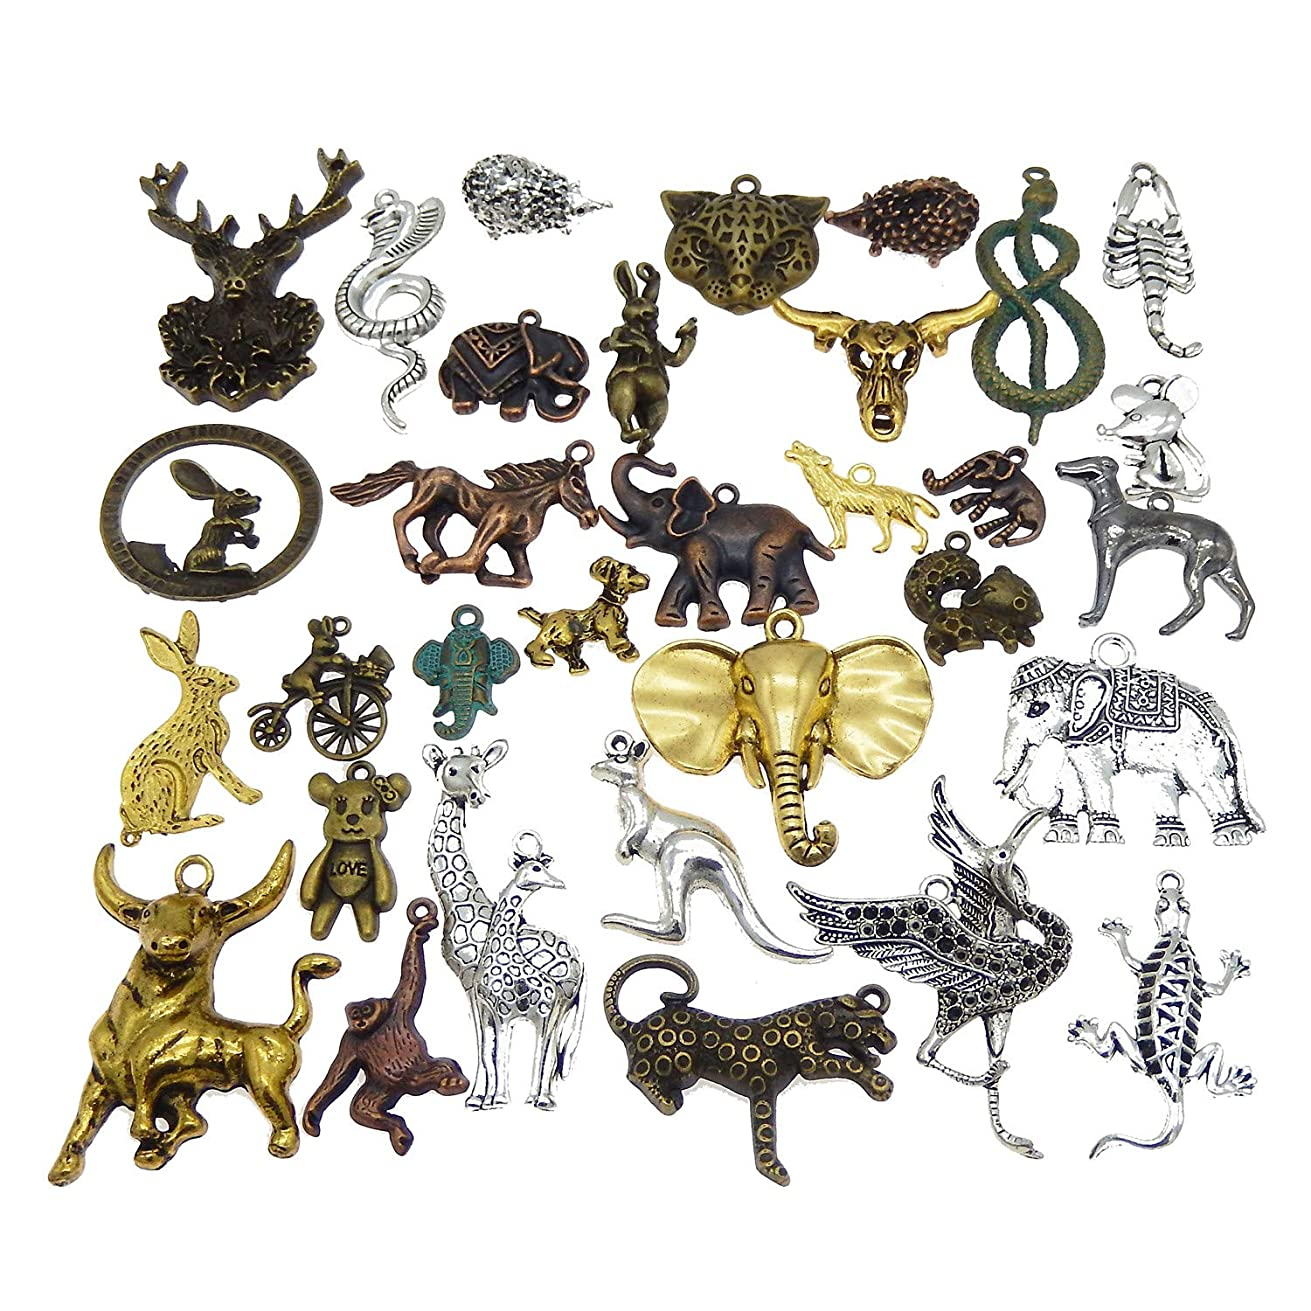 40pcs Mixed Animal Charms Pendants Findings for Jewelry DIY Making